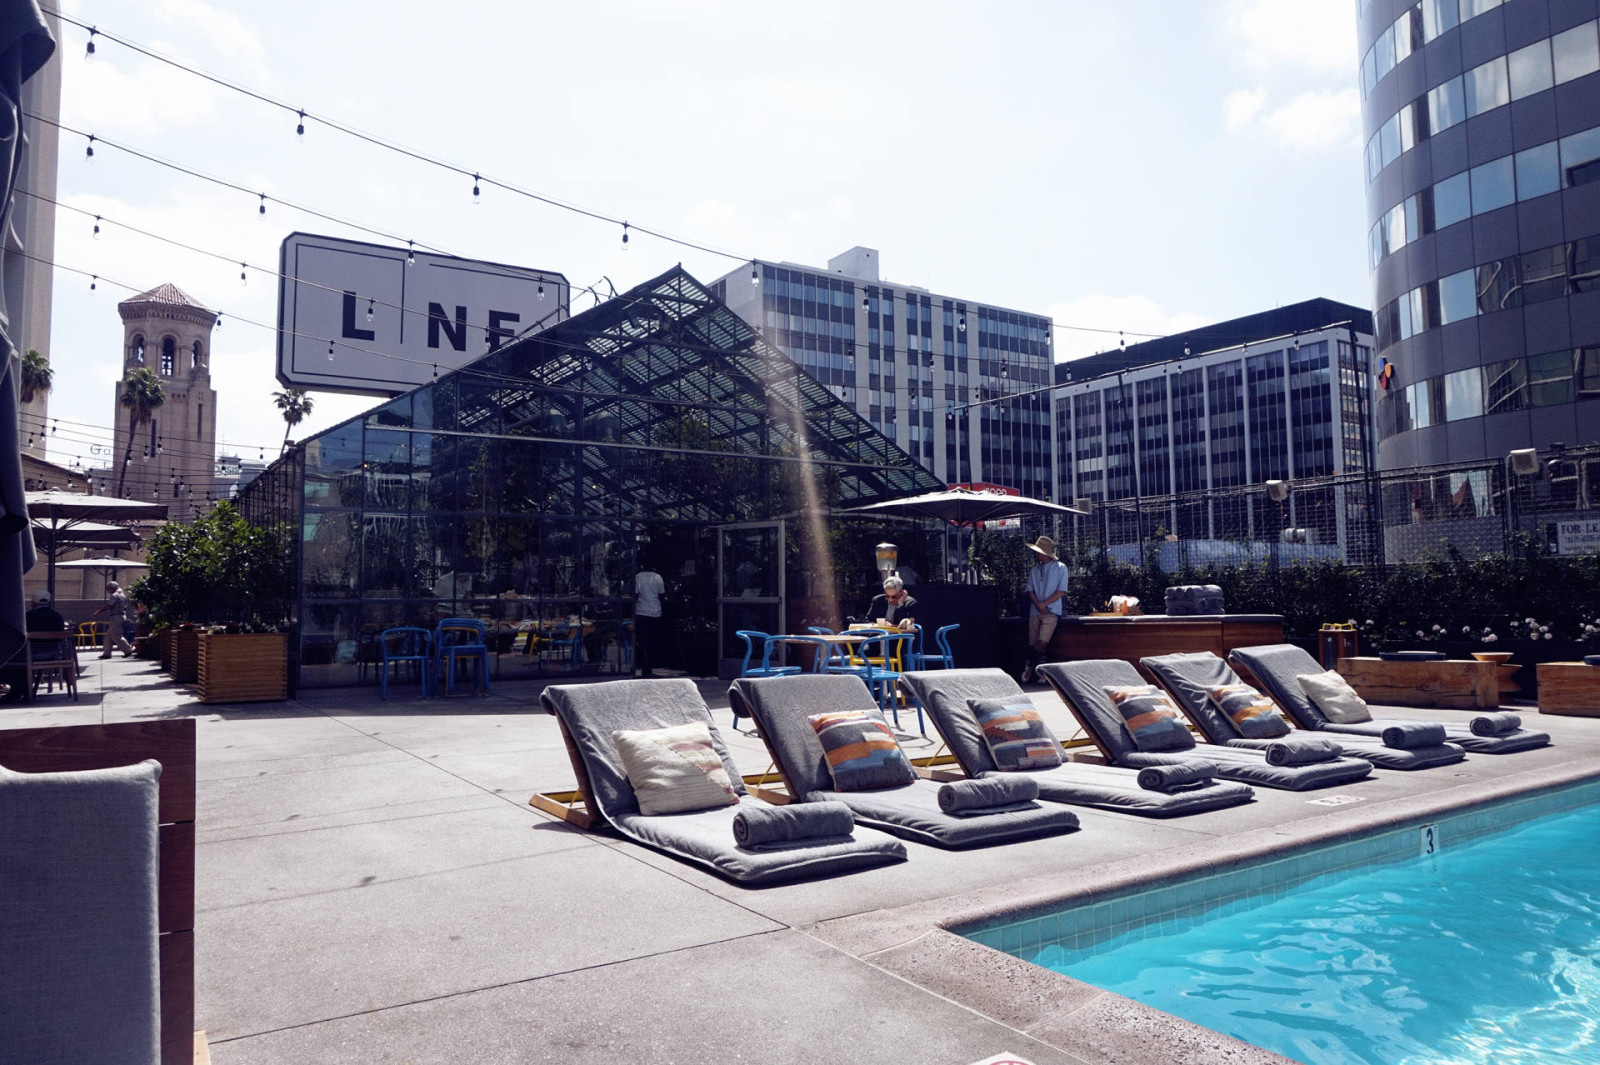 The line hotel los angeles bisous natasha - The line hotel los angeles ...